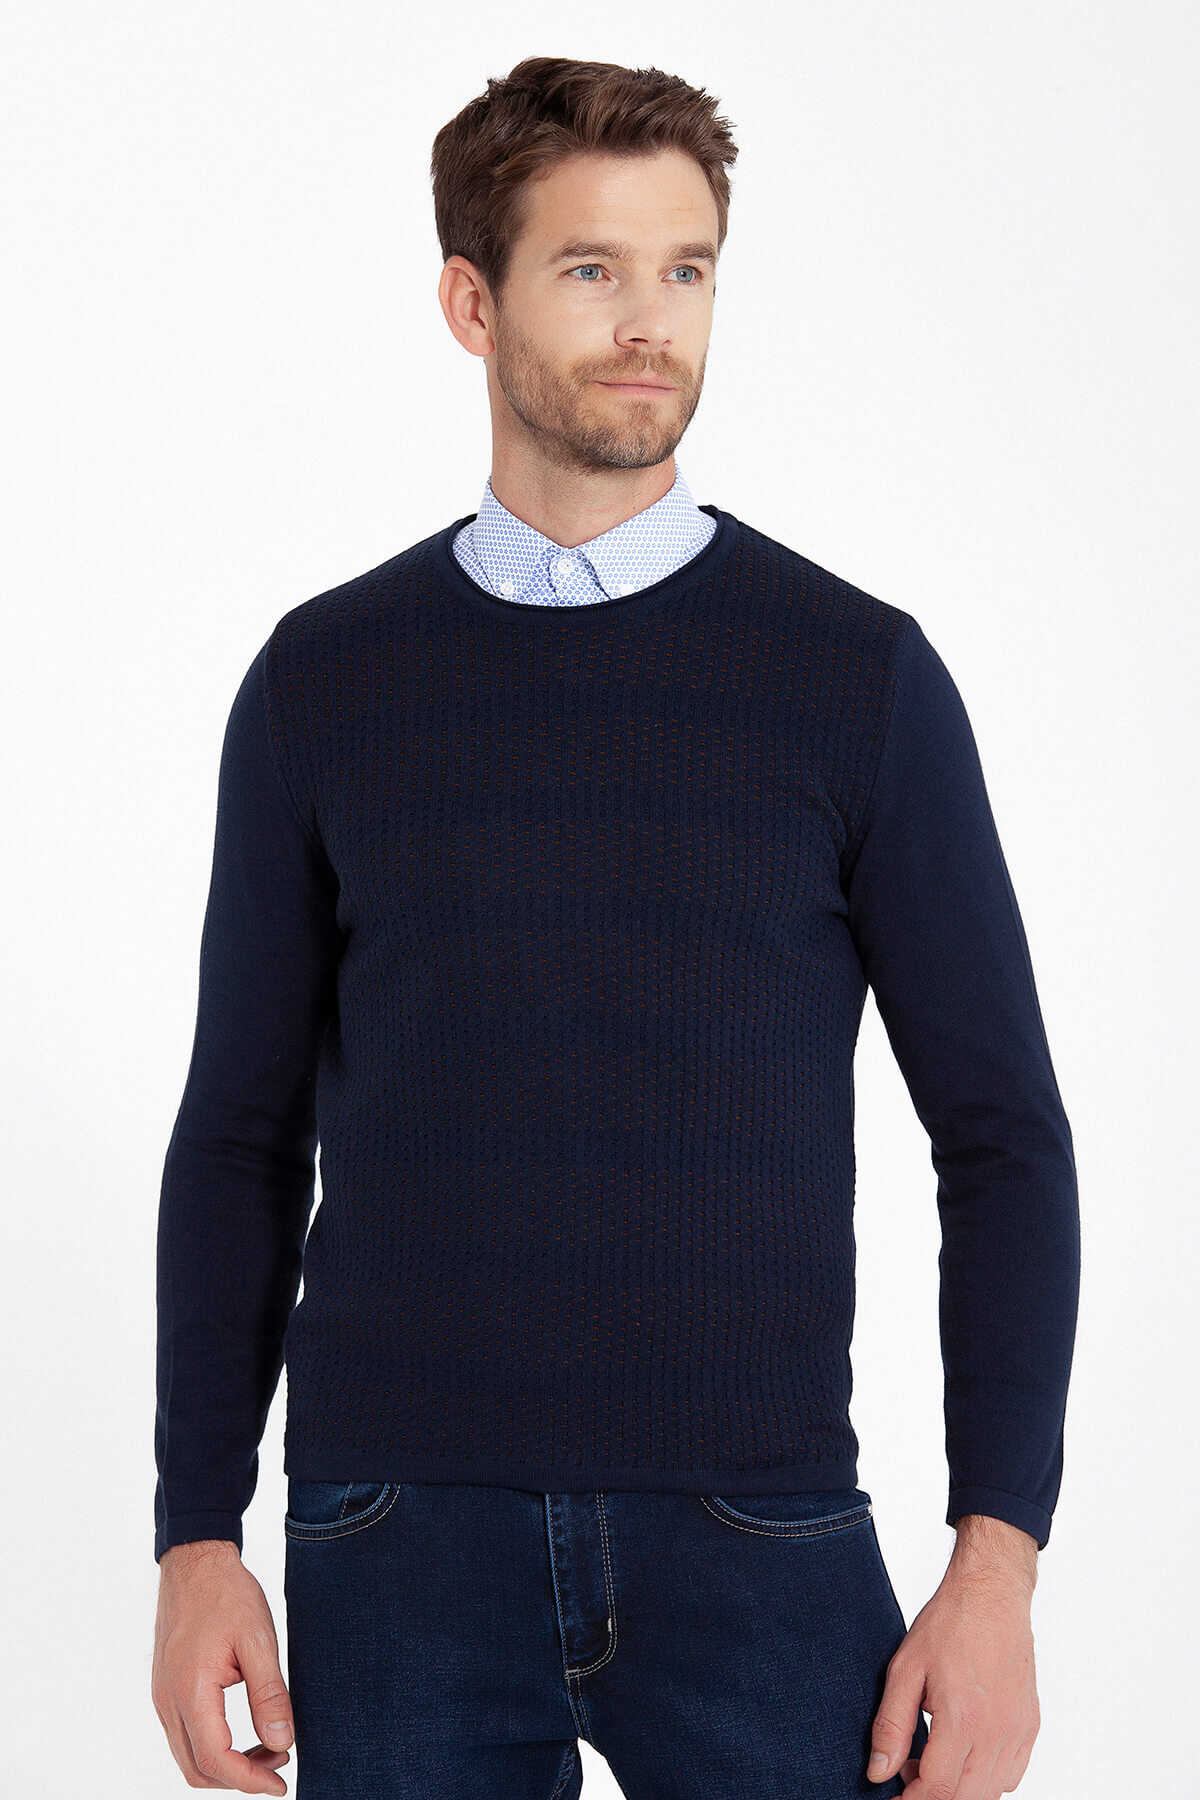 HTML - Ginger Patterned Crew Neck Navy Sweater